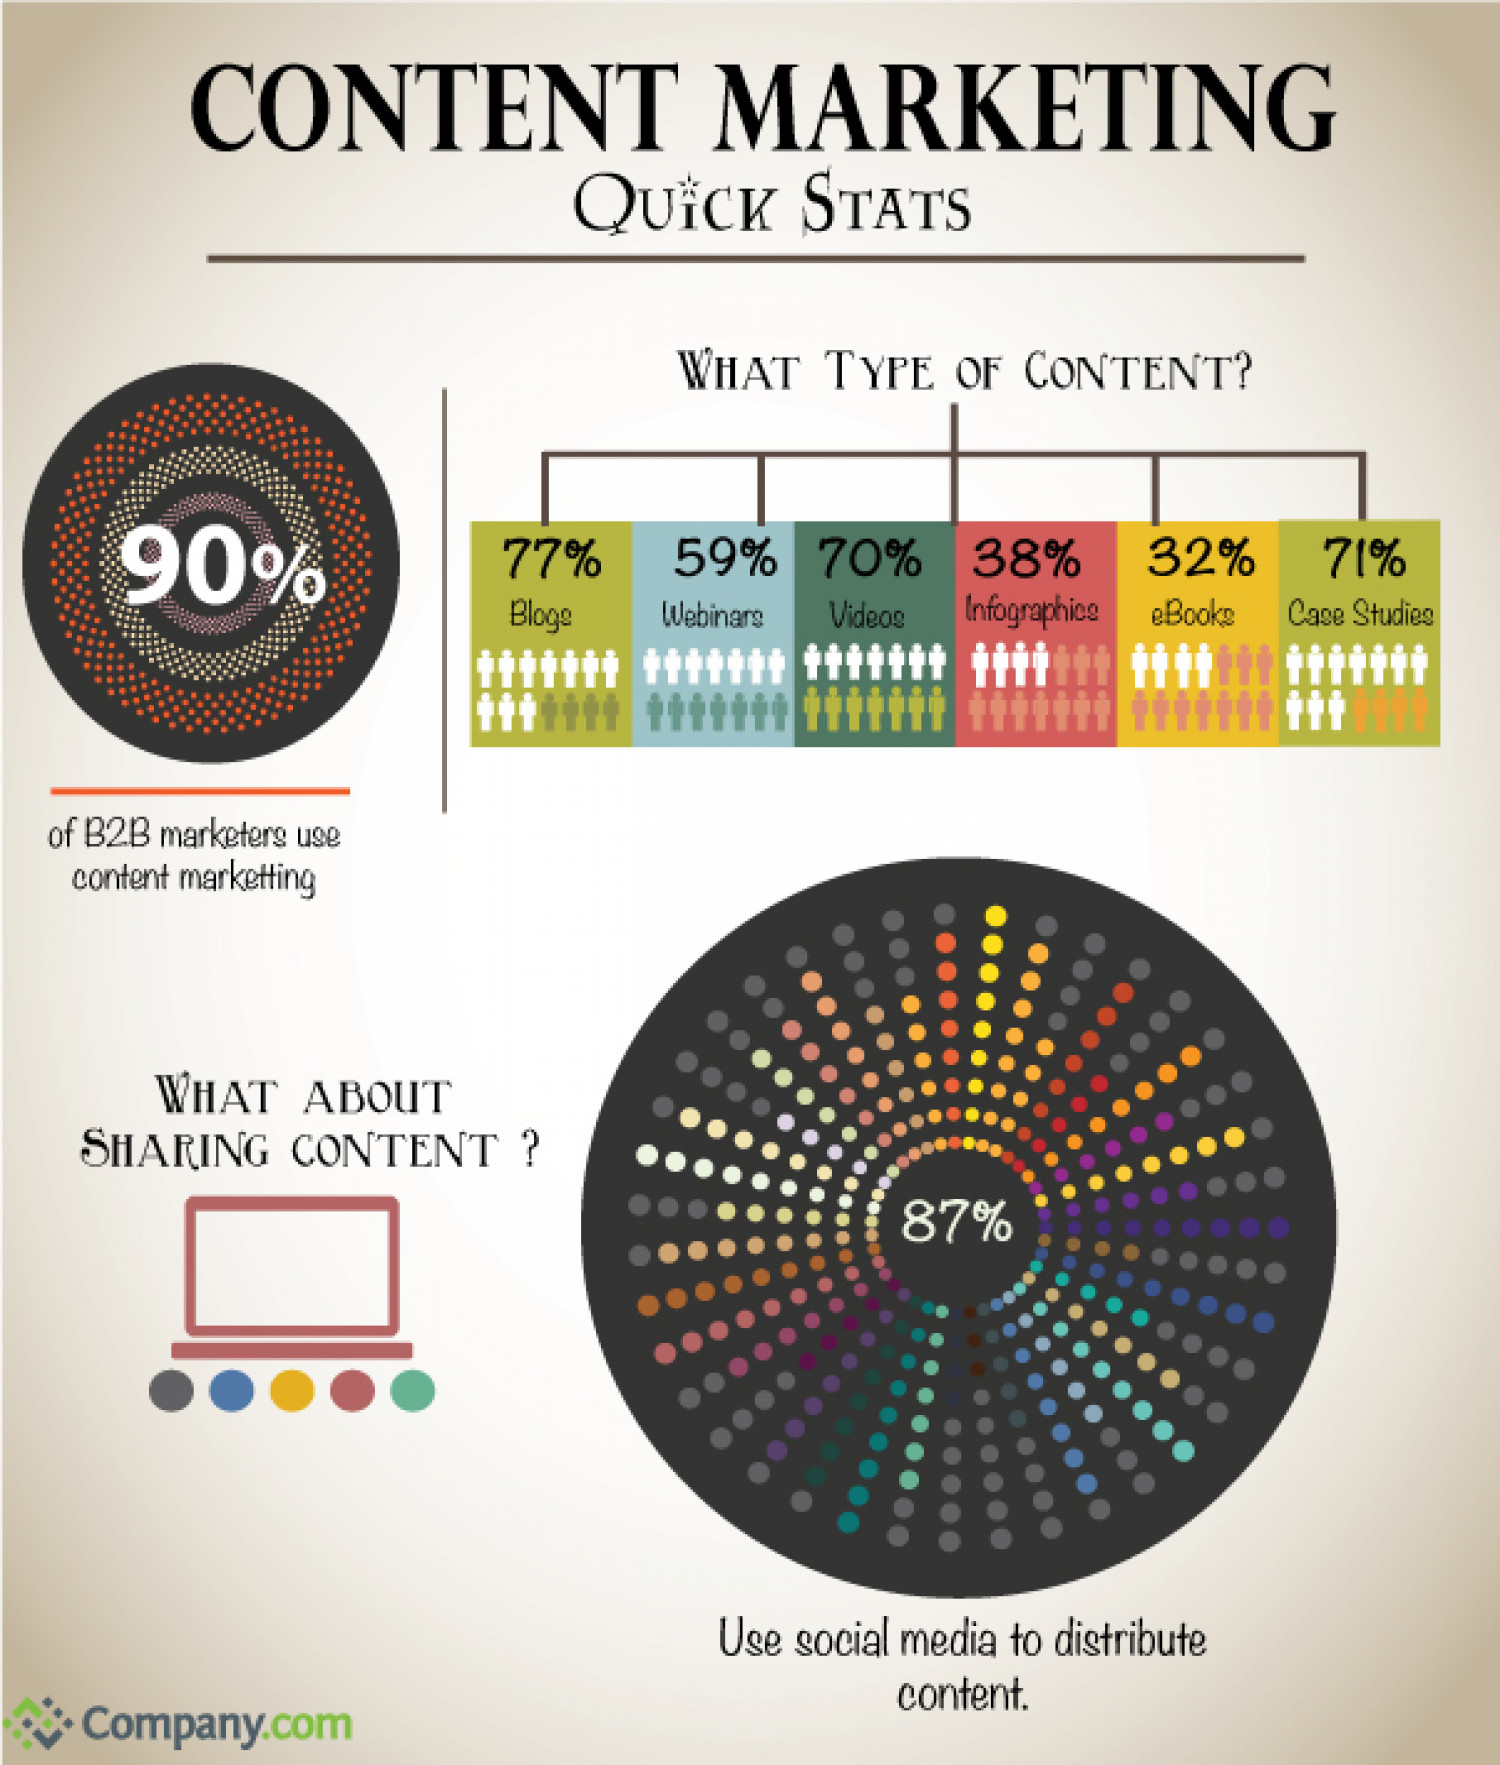 Content Marketing Quick Stats Infographic